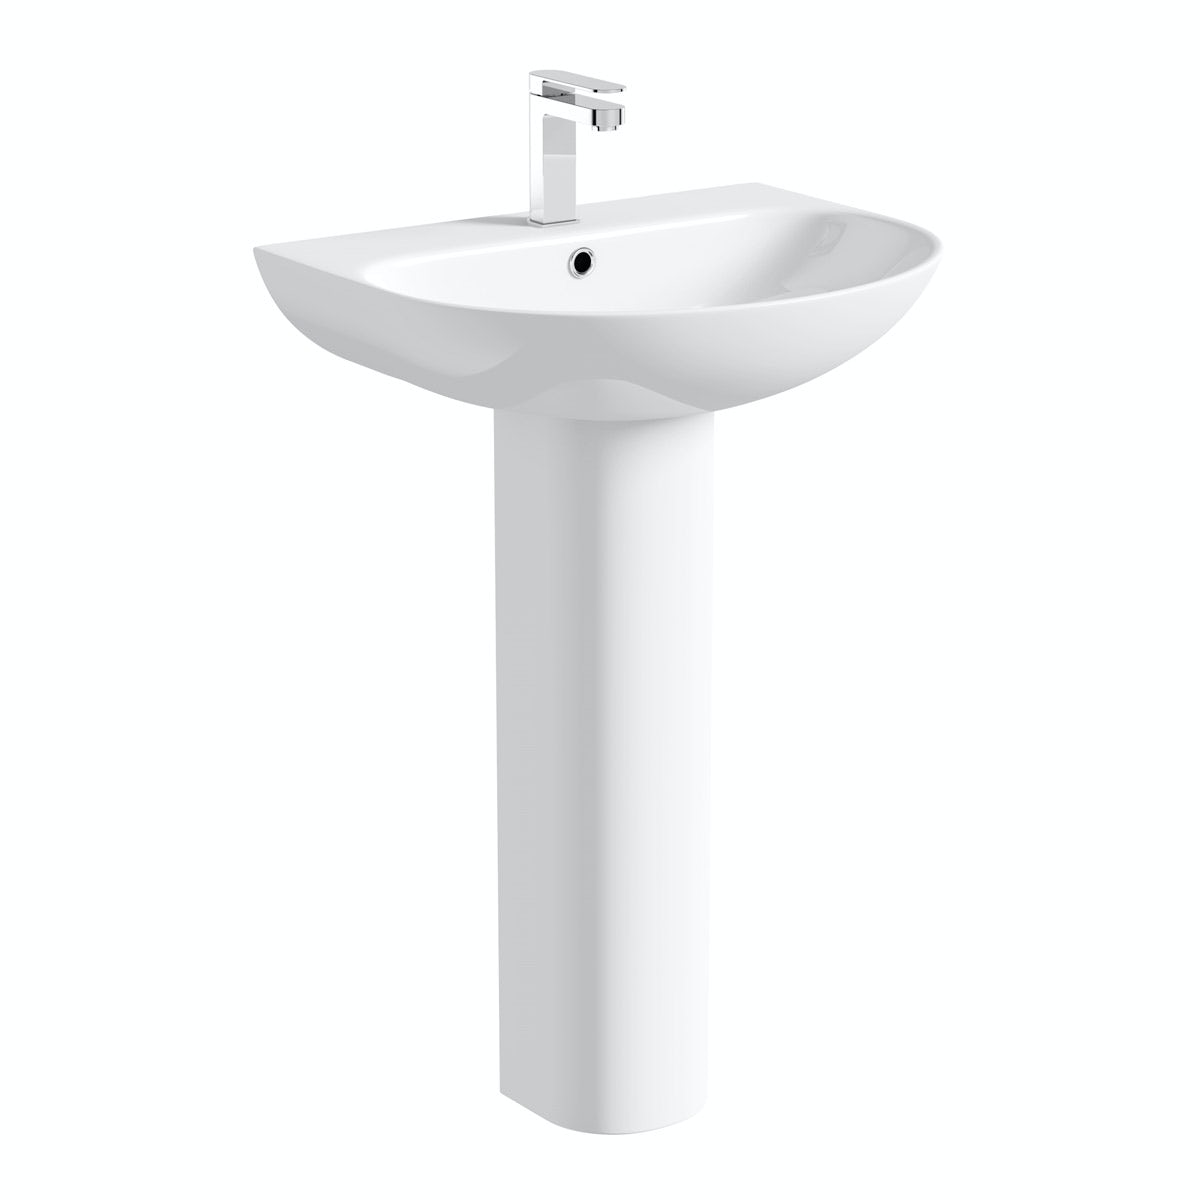 Mode Hardy full pedestal basin 555mm with waste